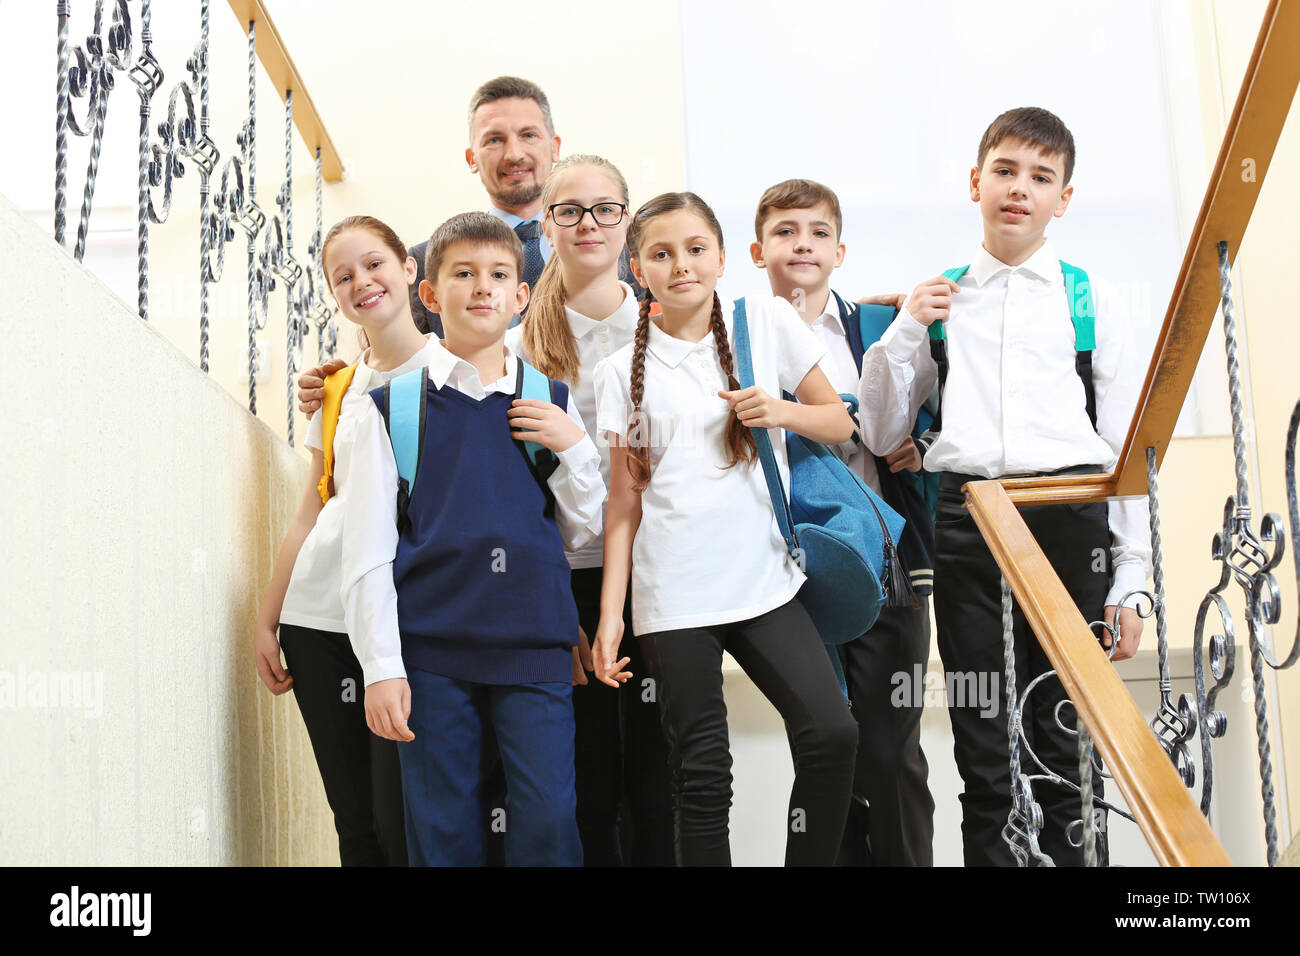 Teacher with children in school corridor during class break - Stock Image